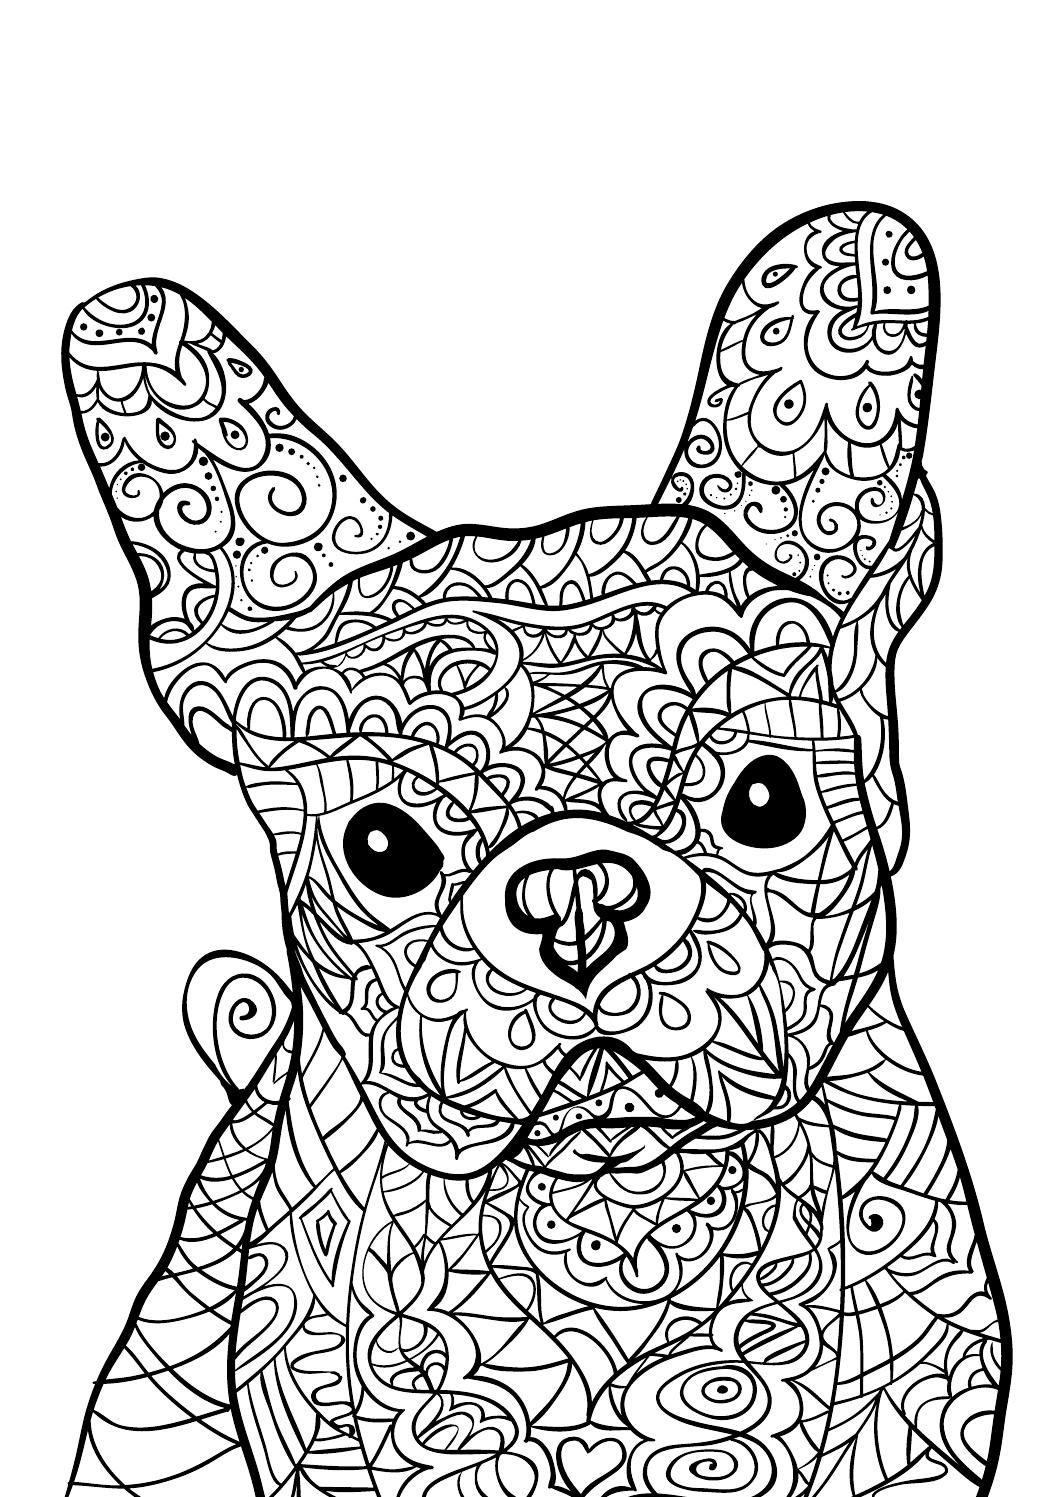 calming coloring pages for adults printable | Colour Calm 07 (Sampler) | Dog coloring page, Adult ...